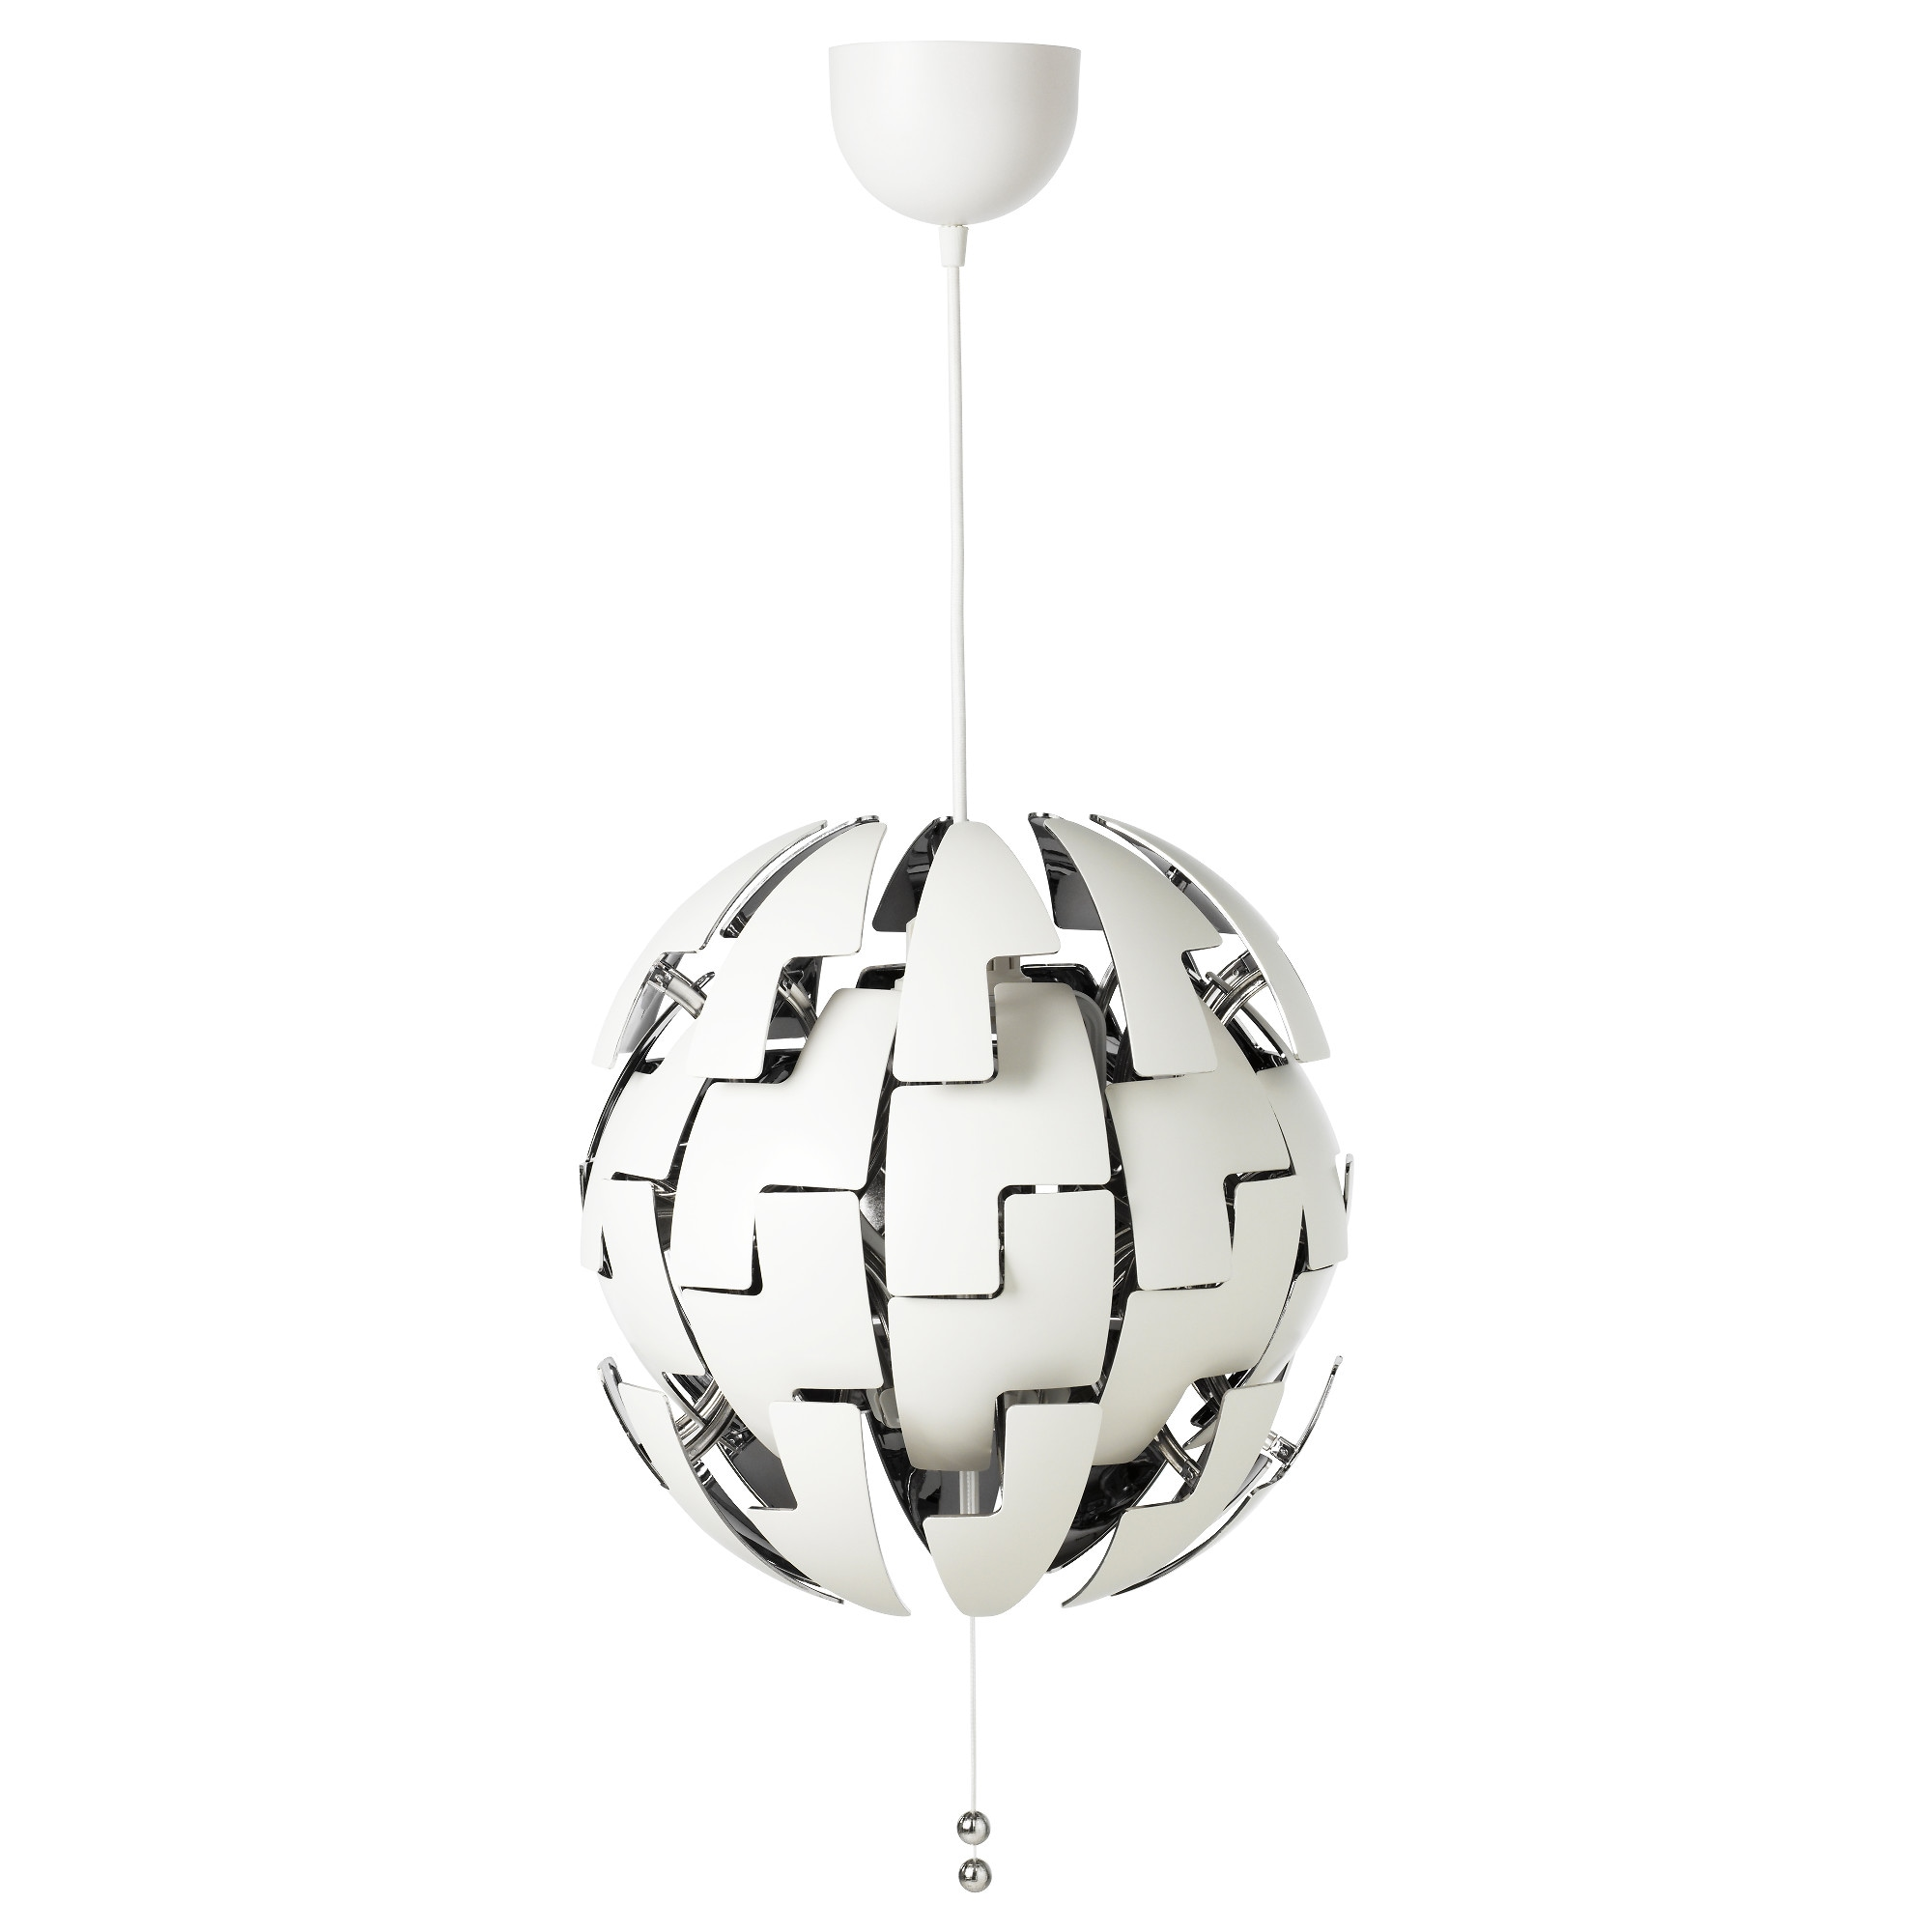 ikea ps 2014 pendant lamp white silver color max 13 w diameter - Suspension Origami Ikea